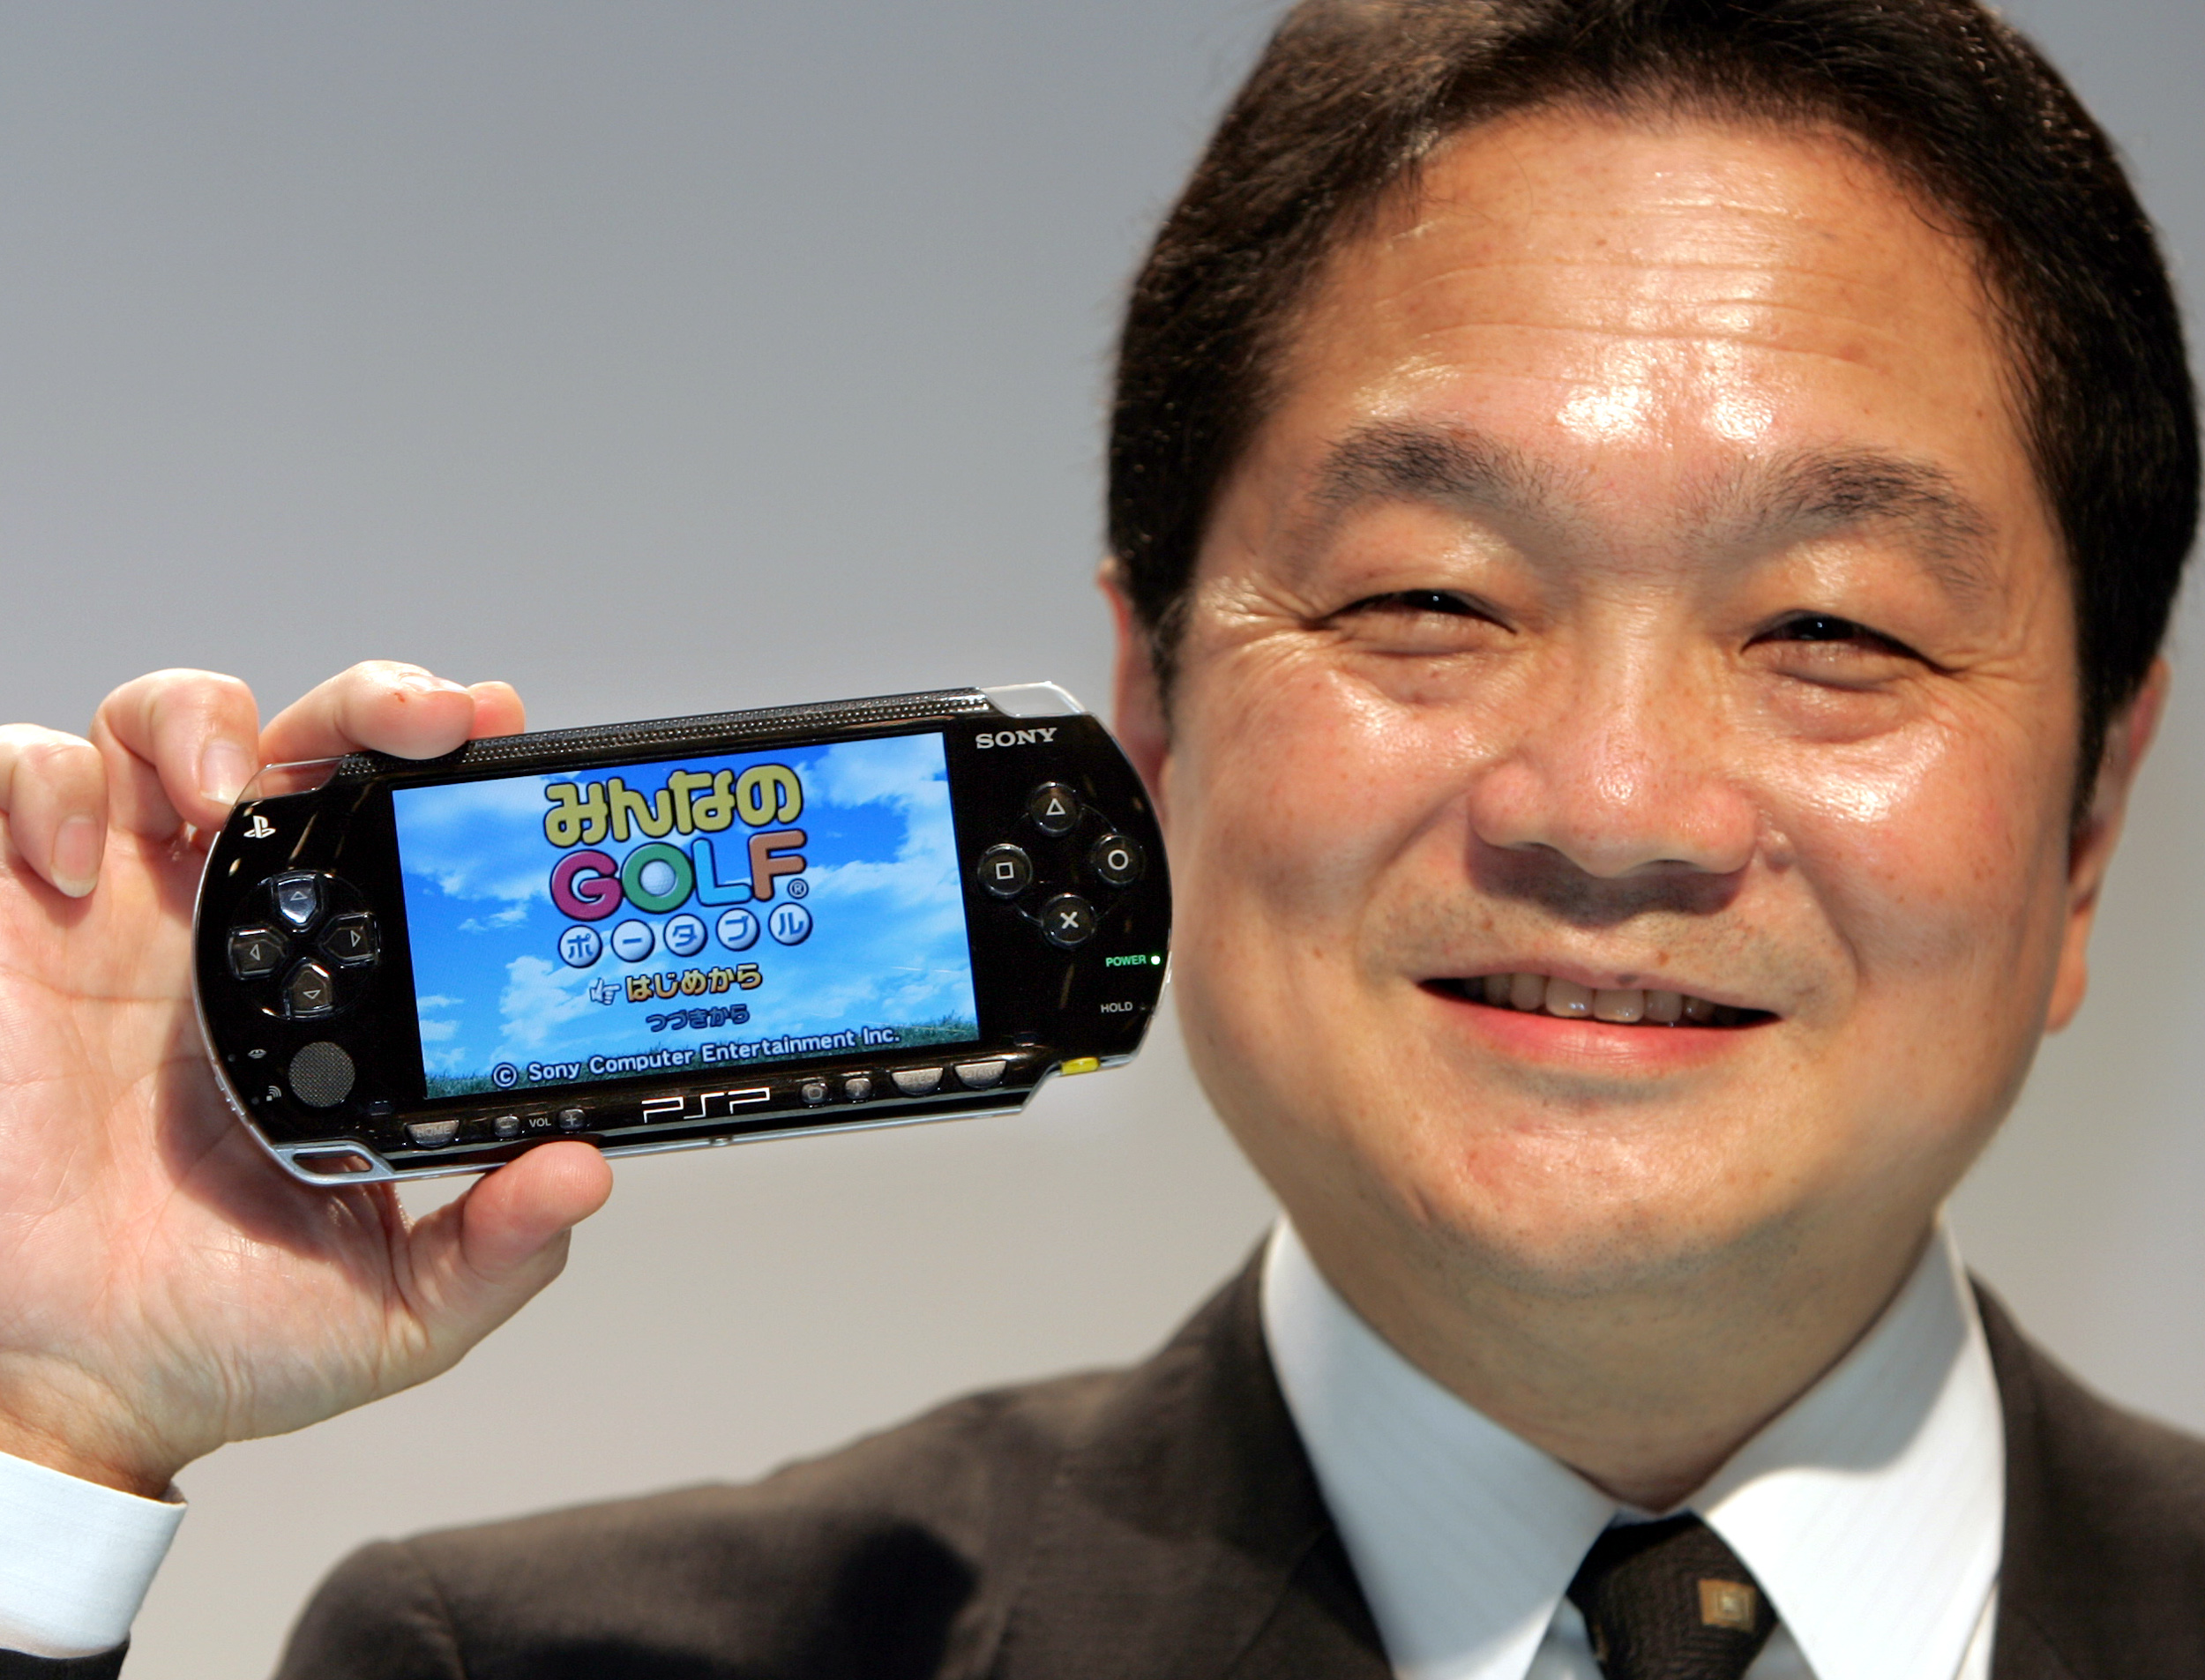 Sony Computer Entertainment President and Chief Exective Officer Ken Kutaragi displays PlayStation Portable (PSP) in Tokyo September 21, 2004. Sony kept secret on Tuesday about the detail of its own handheld game machine PSP, such as its price and launch date, but it unveiled a plan to launch a new version of its popular PlayStation 2 (PS2) game console in the United States and Europe on November 1 at a price of $149 and 149 euros ($181) respectively. Following the overseas launch, Sony plans to start selling the smaller version of the PS2 in Japan on November 3 at around 20,000 yen ($182). REUTERS/Issei Kato  IK/CP